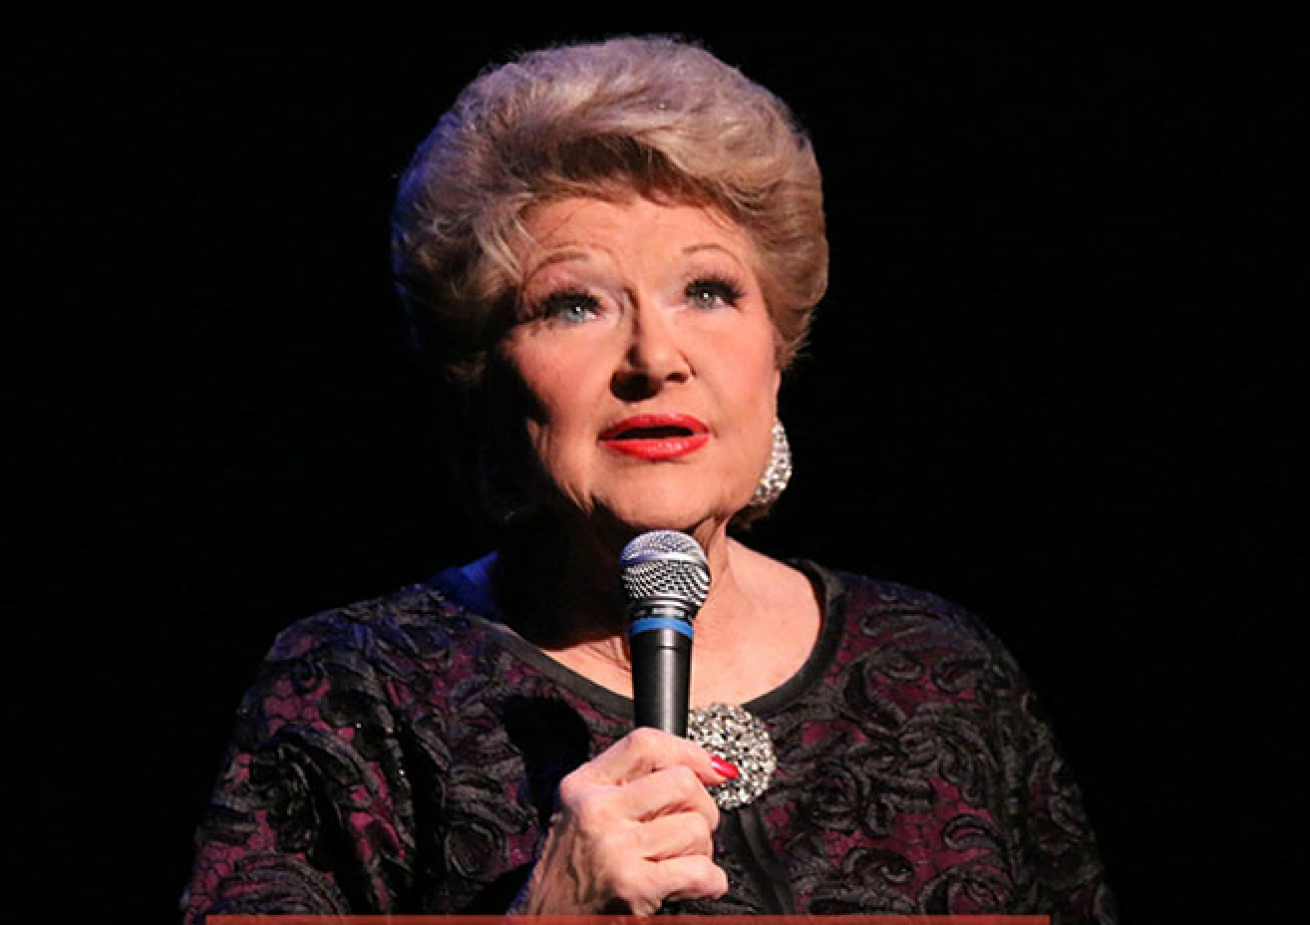 "Marilyn Maye Celebrating 90 years! - March 7 & 8, 2018The Ferring Jazz Bistro, Jazz St. Louis co-presenterGet TICKETS HEREJoin in the St. Louis celebration of this musical icon's 90th Birthday!WATCH MARILYN AT LINCOLN CENTER Marilyn Maye is an iconic entertainer whom Ella Fitzgerald praised as one of her absolute favorite singers. Maye has performed with legends like Count Basie, Charlie Parker, Bucky Pizzarelli, and Michael Feinstein. Recently, Maye also brought her theatrical energy to The Appel Room at Lincoln Center in a triumphant run with an 18-piece big band! Maye is a famously engaging crowd-pleaser and one of the remaining geniuses from the golden age of show business. Still at the top of her game, this award-winning Grammy nominated singer holds the record for appearances by a singer on the Tonight Show Starring Johnny Carson - 76 times!  Perhaps the simplest Marilyn Maye accolade came after one of her show-stopping appearances on The Tonight Show when turning to his audience of millions, Johnny Carson said, ""And that, young singers, is the way it's done."""